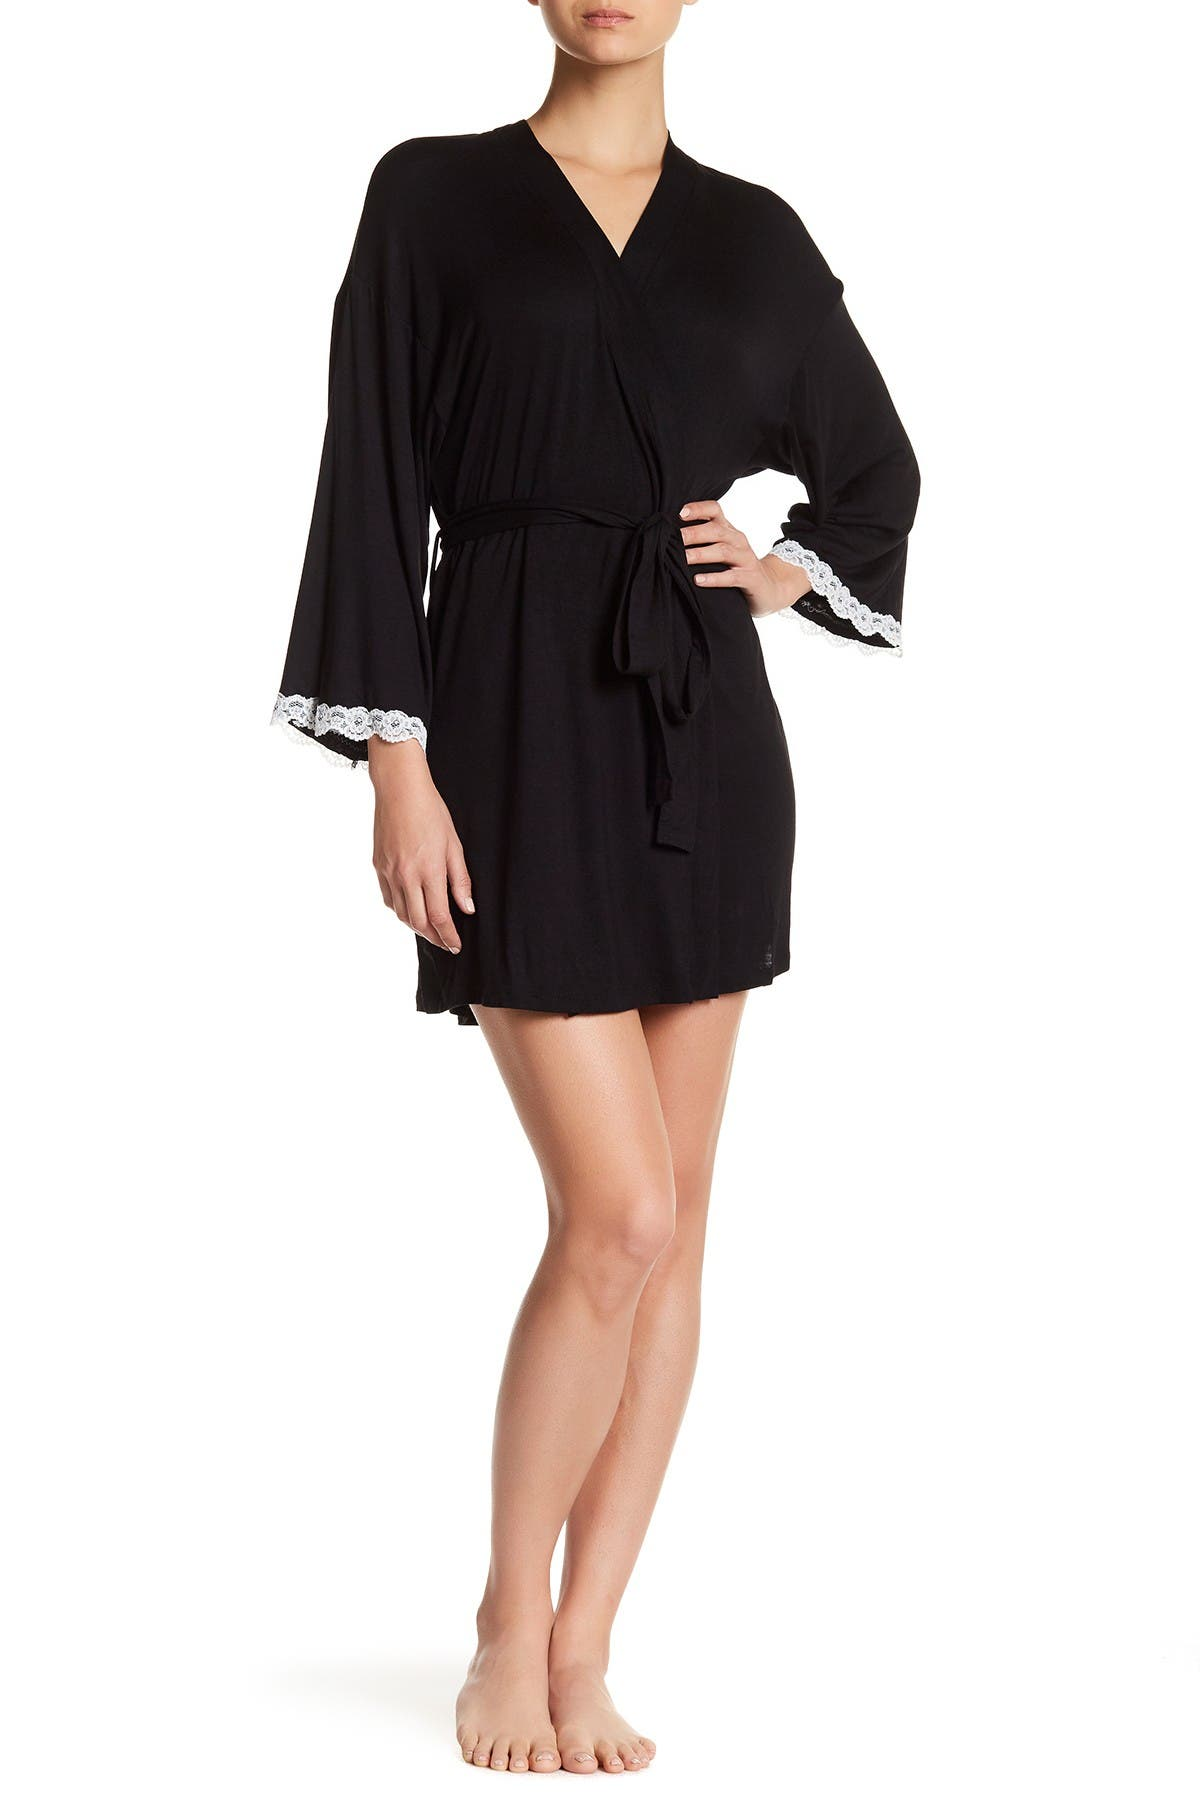 Image of h.dew Lace Trim Robe